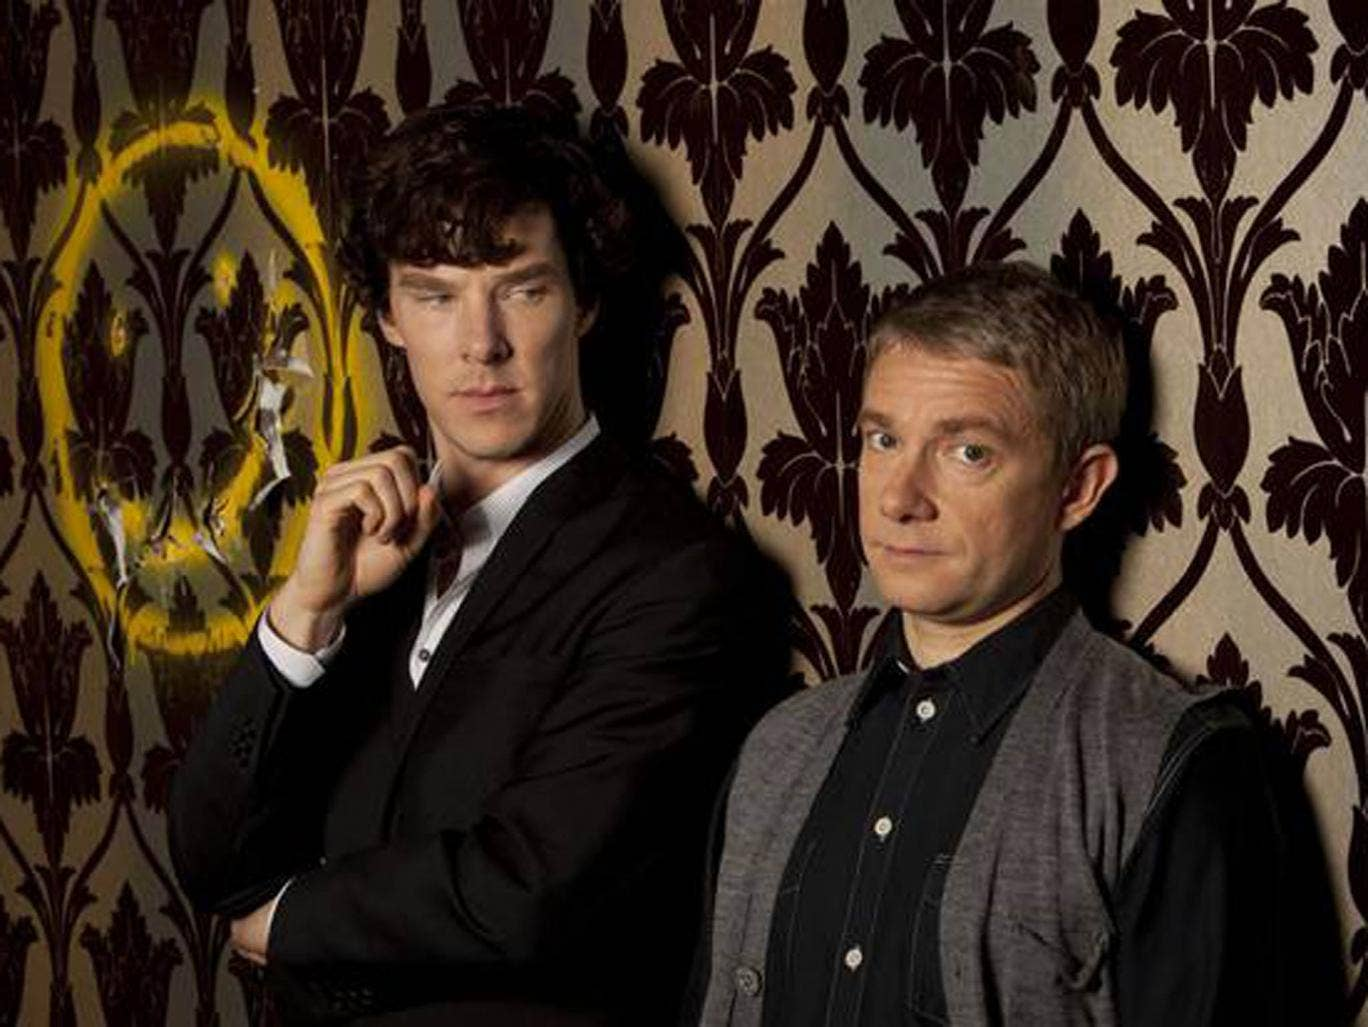 Benedict Cumberbatch and Martin Freeman as Holmes and Watson in Sherlock